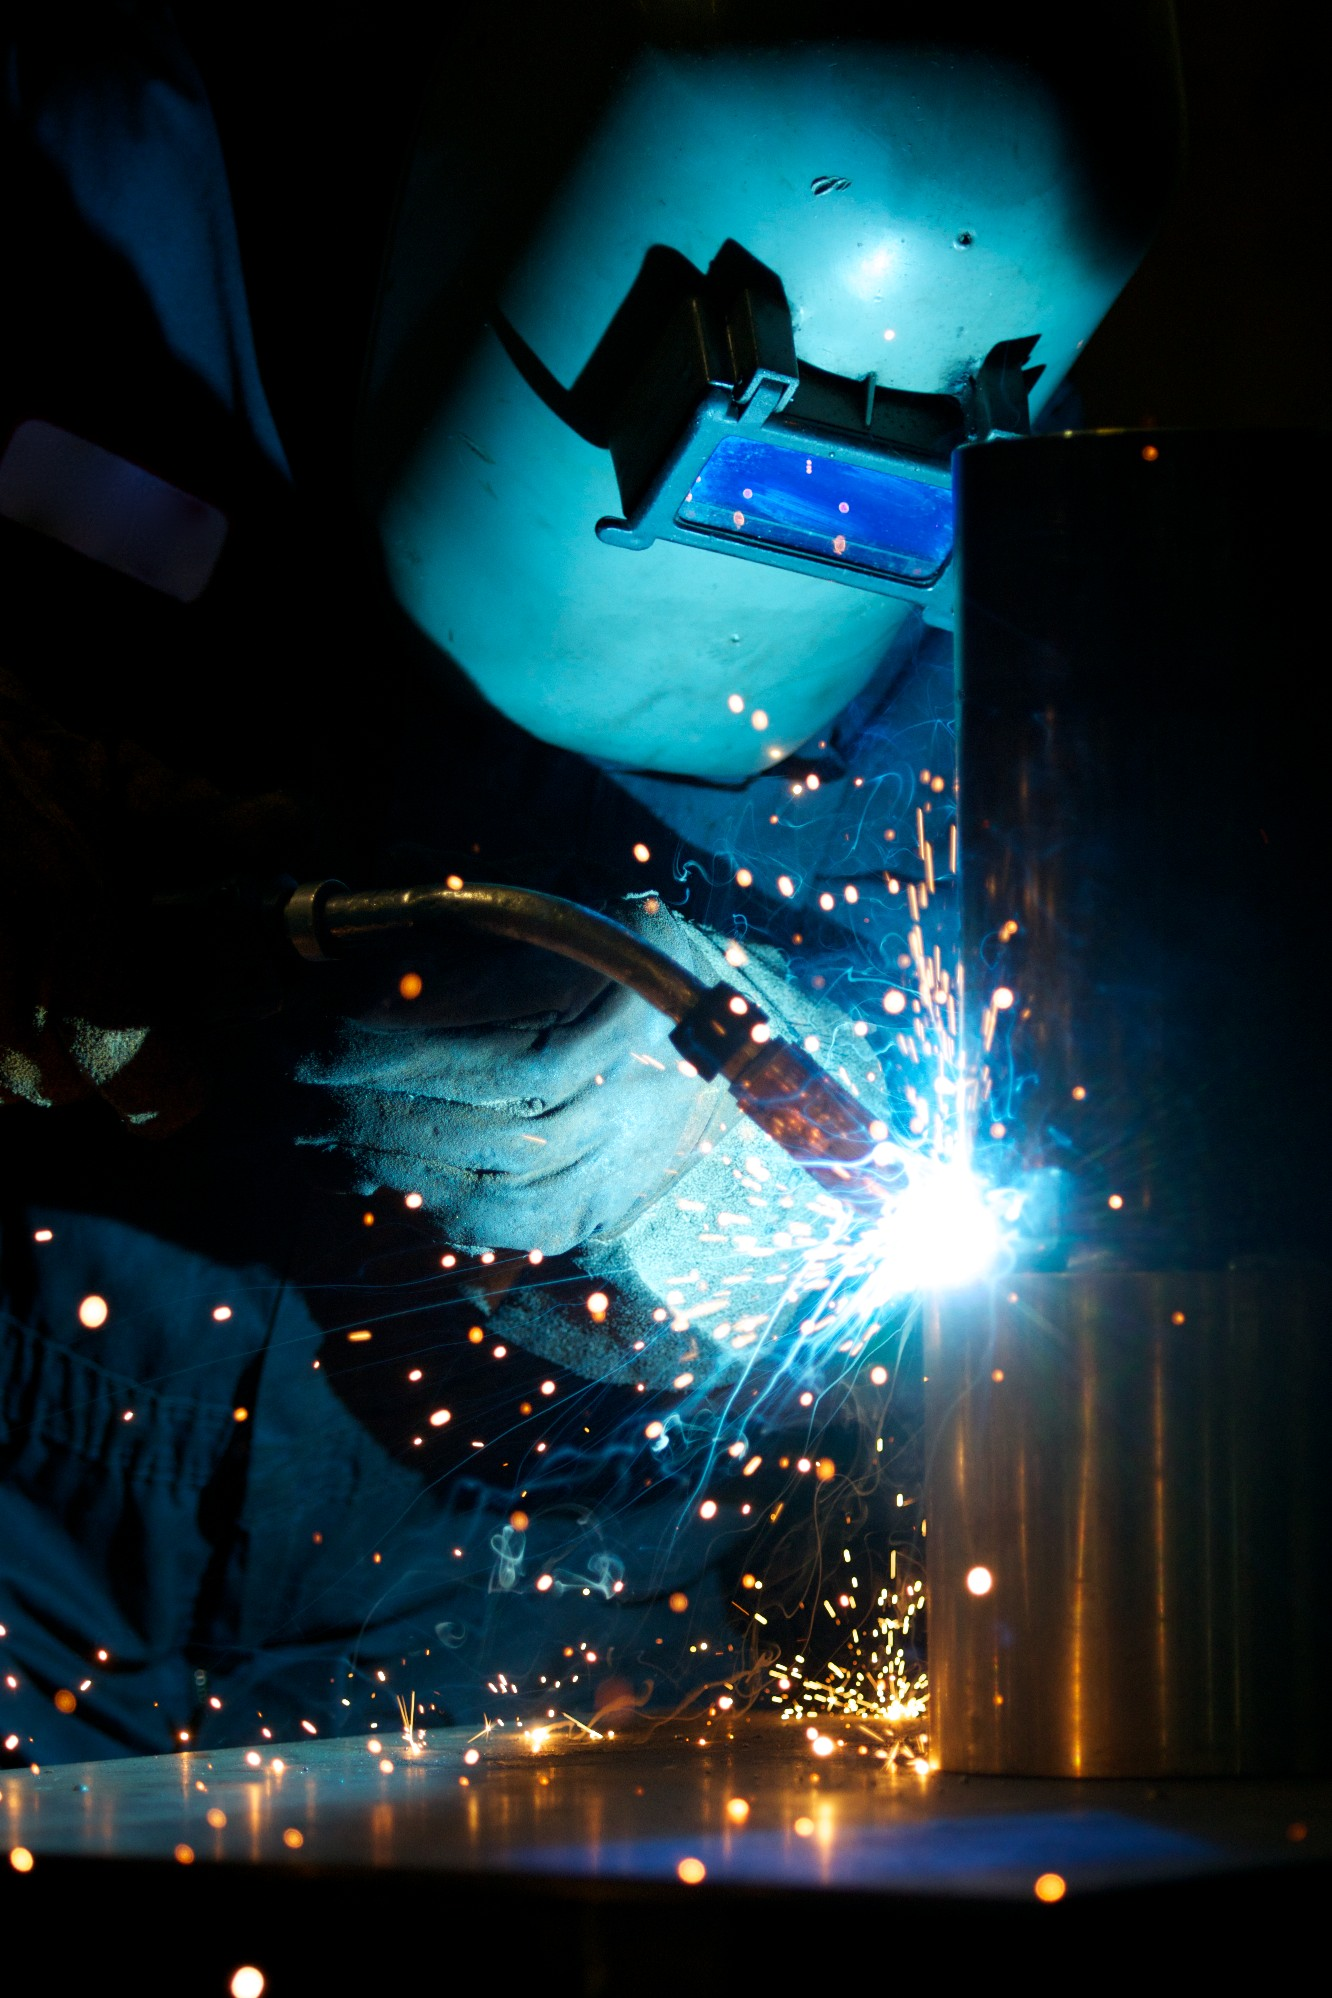 Mig Welding - We can perform mig welding on request.